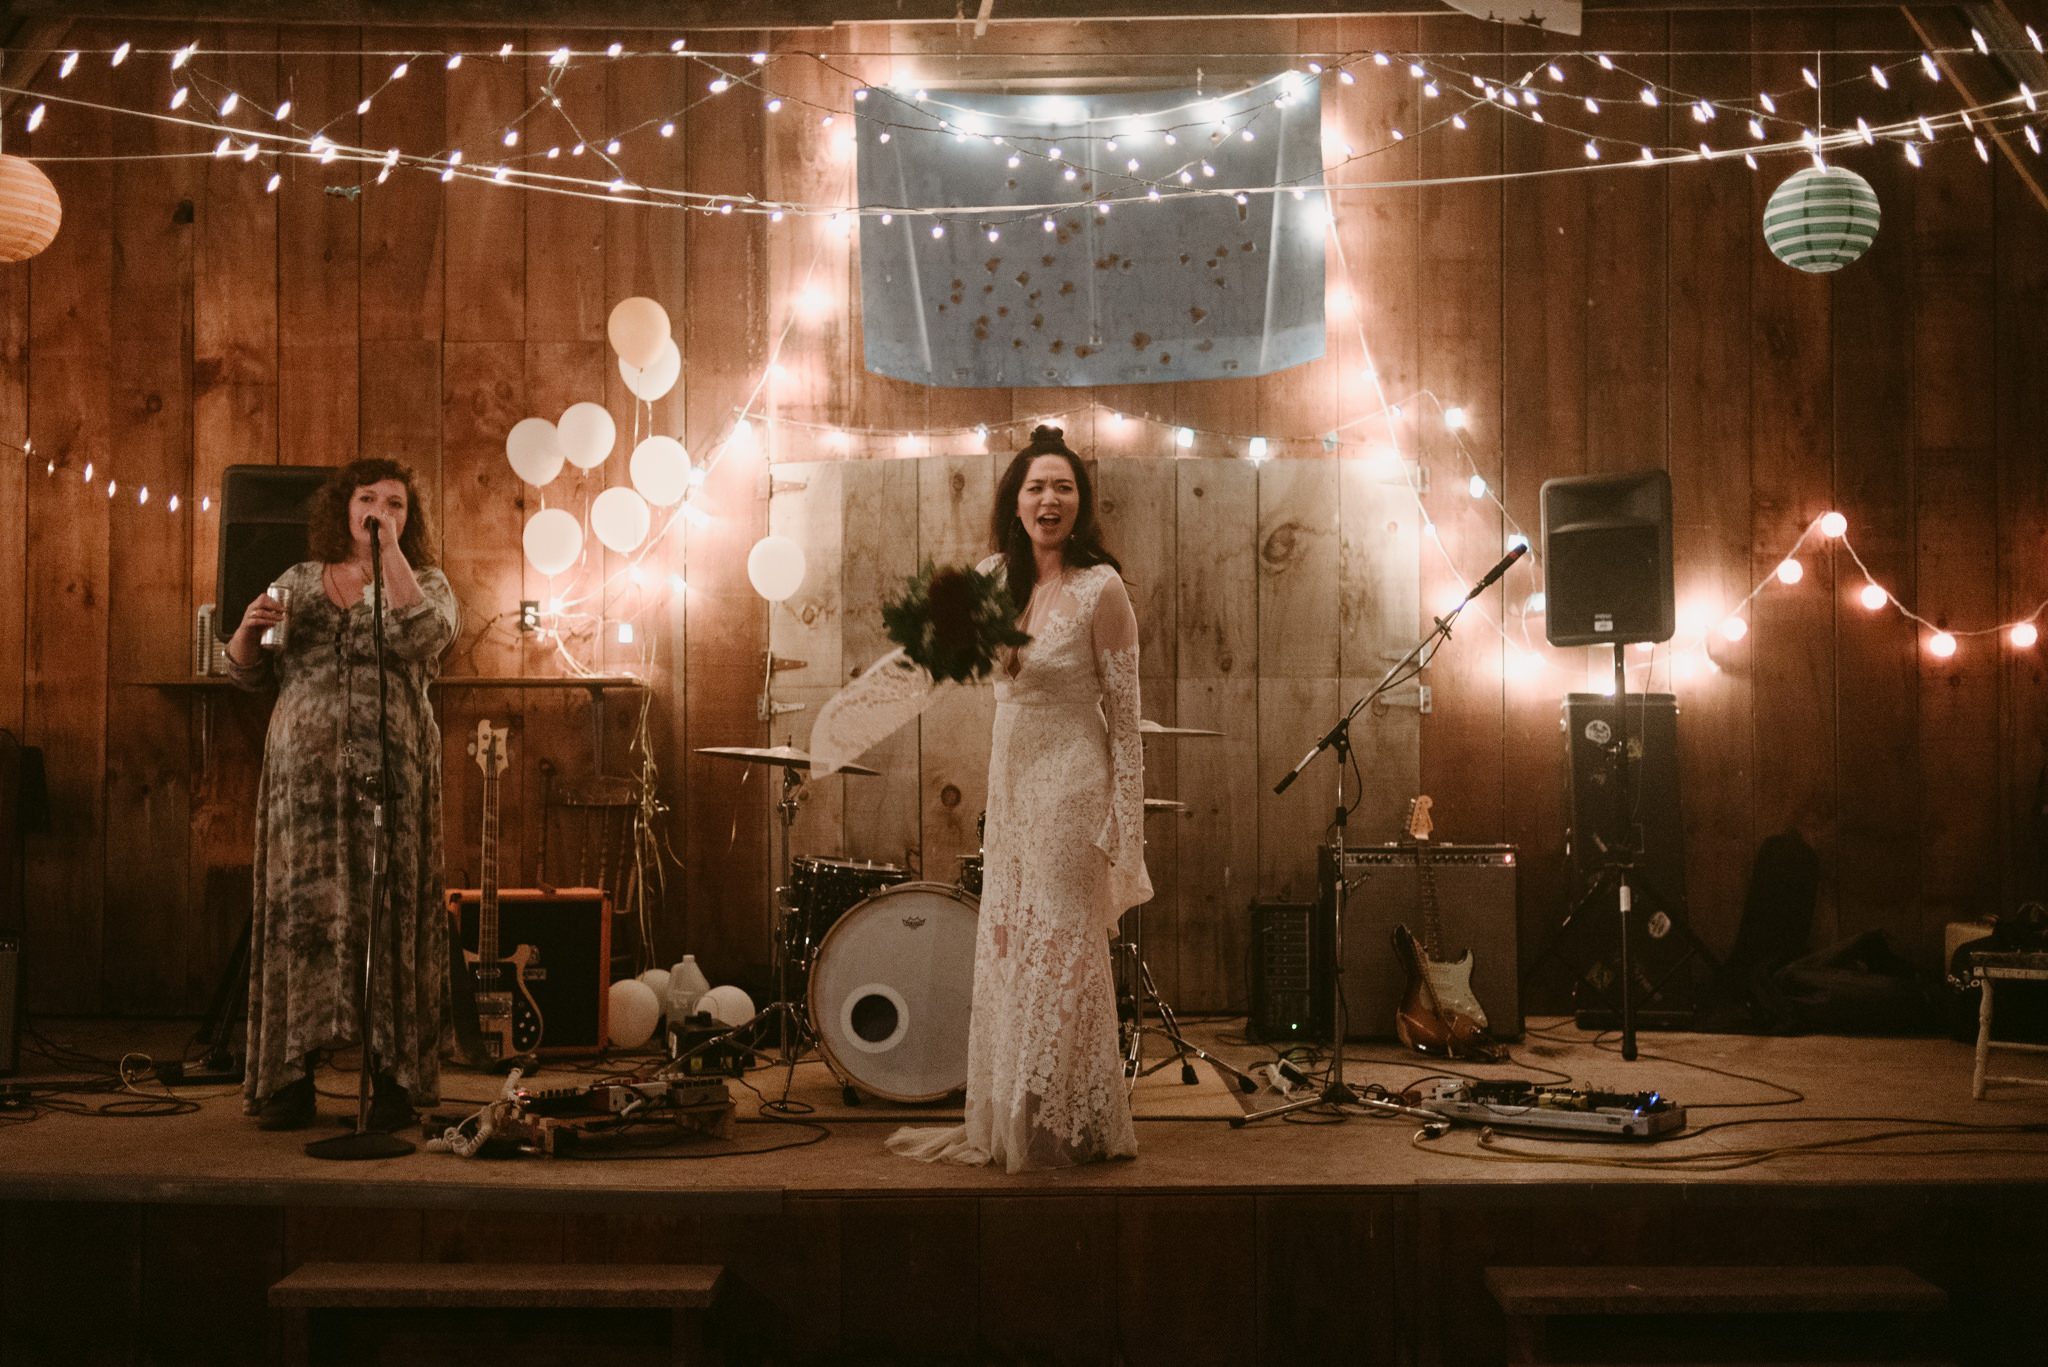 bride on stage with string lights and balloons